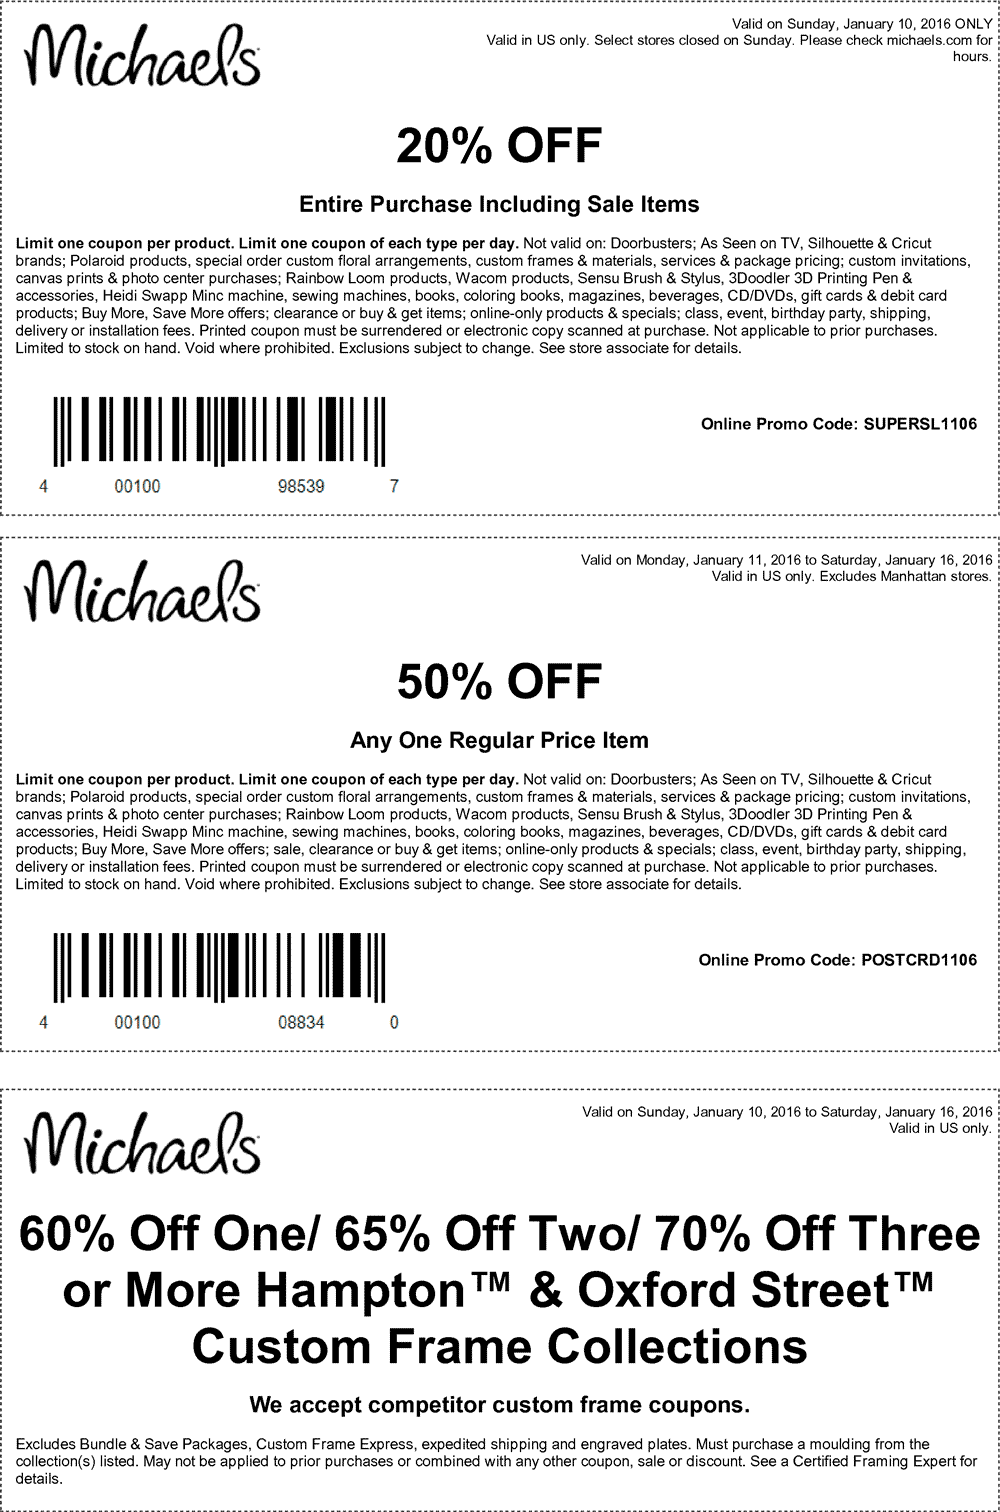 Michaels Coupon June 2019 20% off everything, 50% off a single item at Michaels, or online via promo code POSTCRD1106